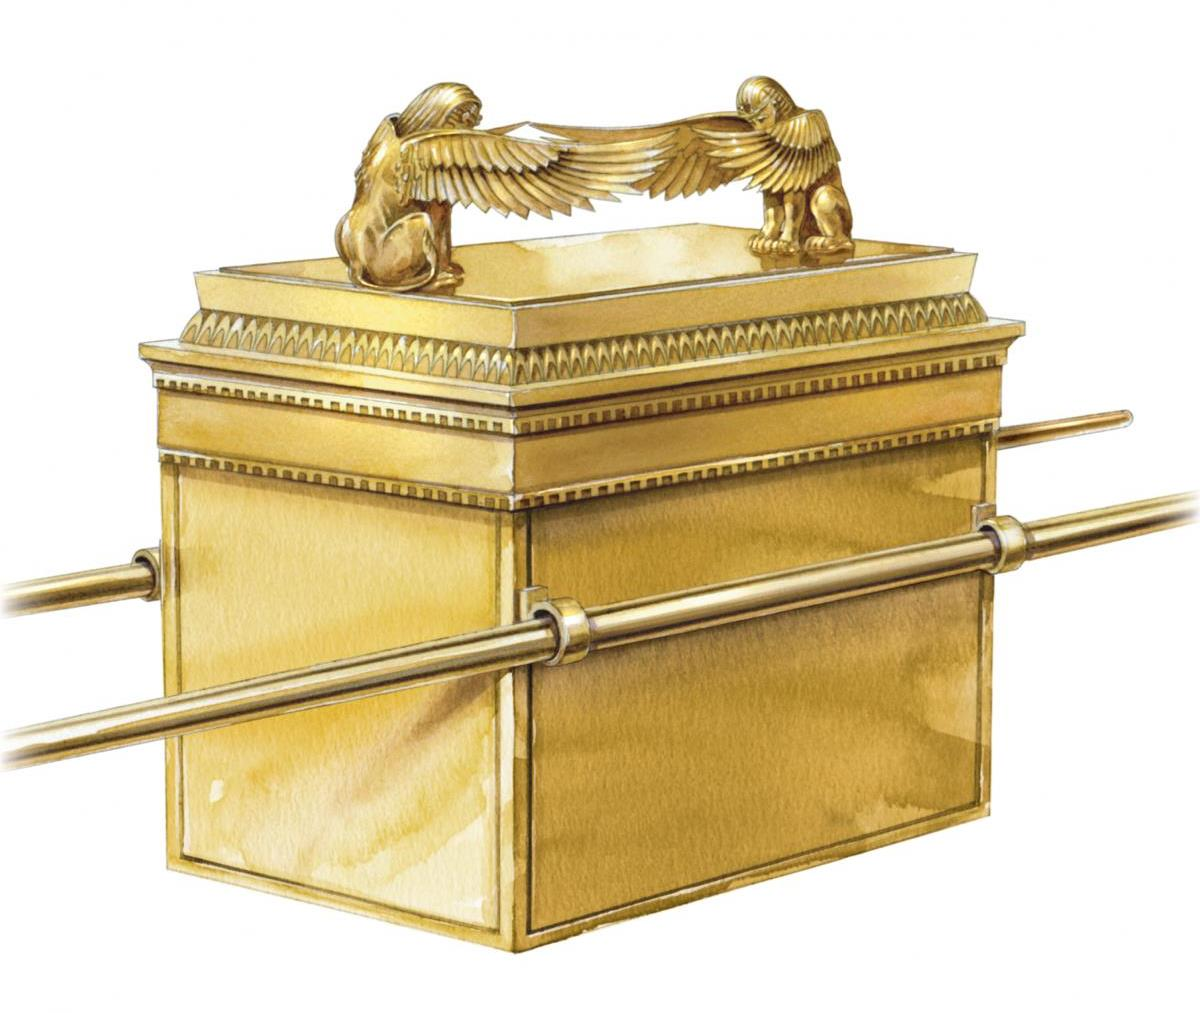 ark-of-the-covenant-legein2.jpg